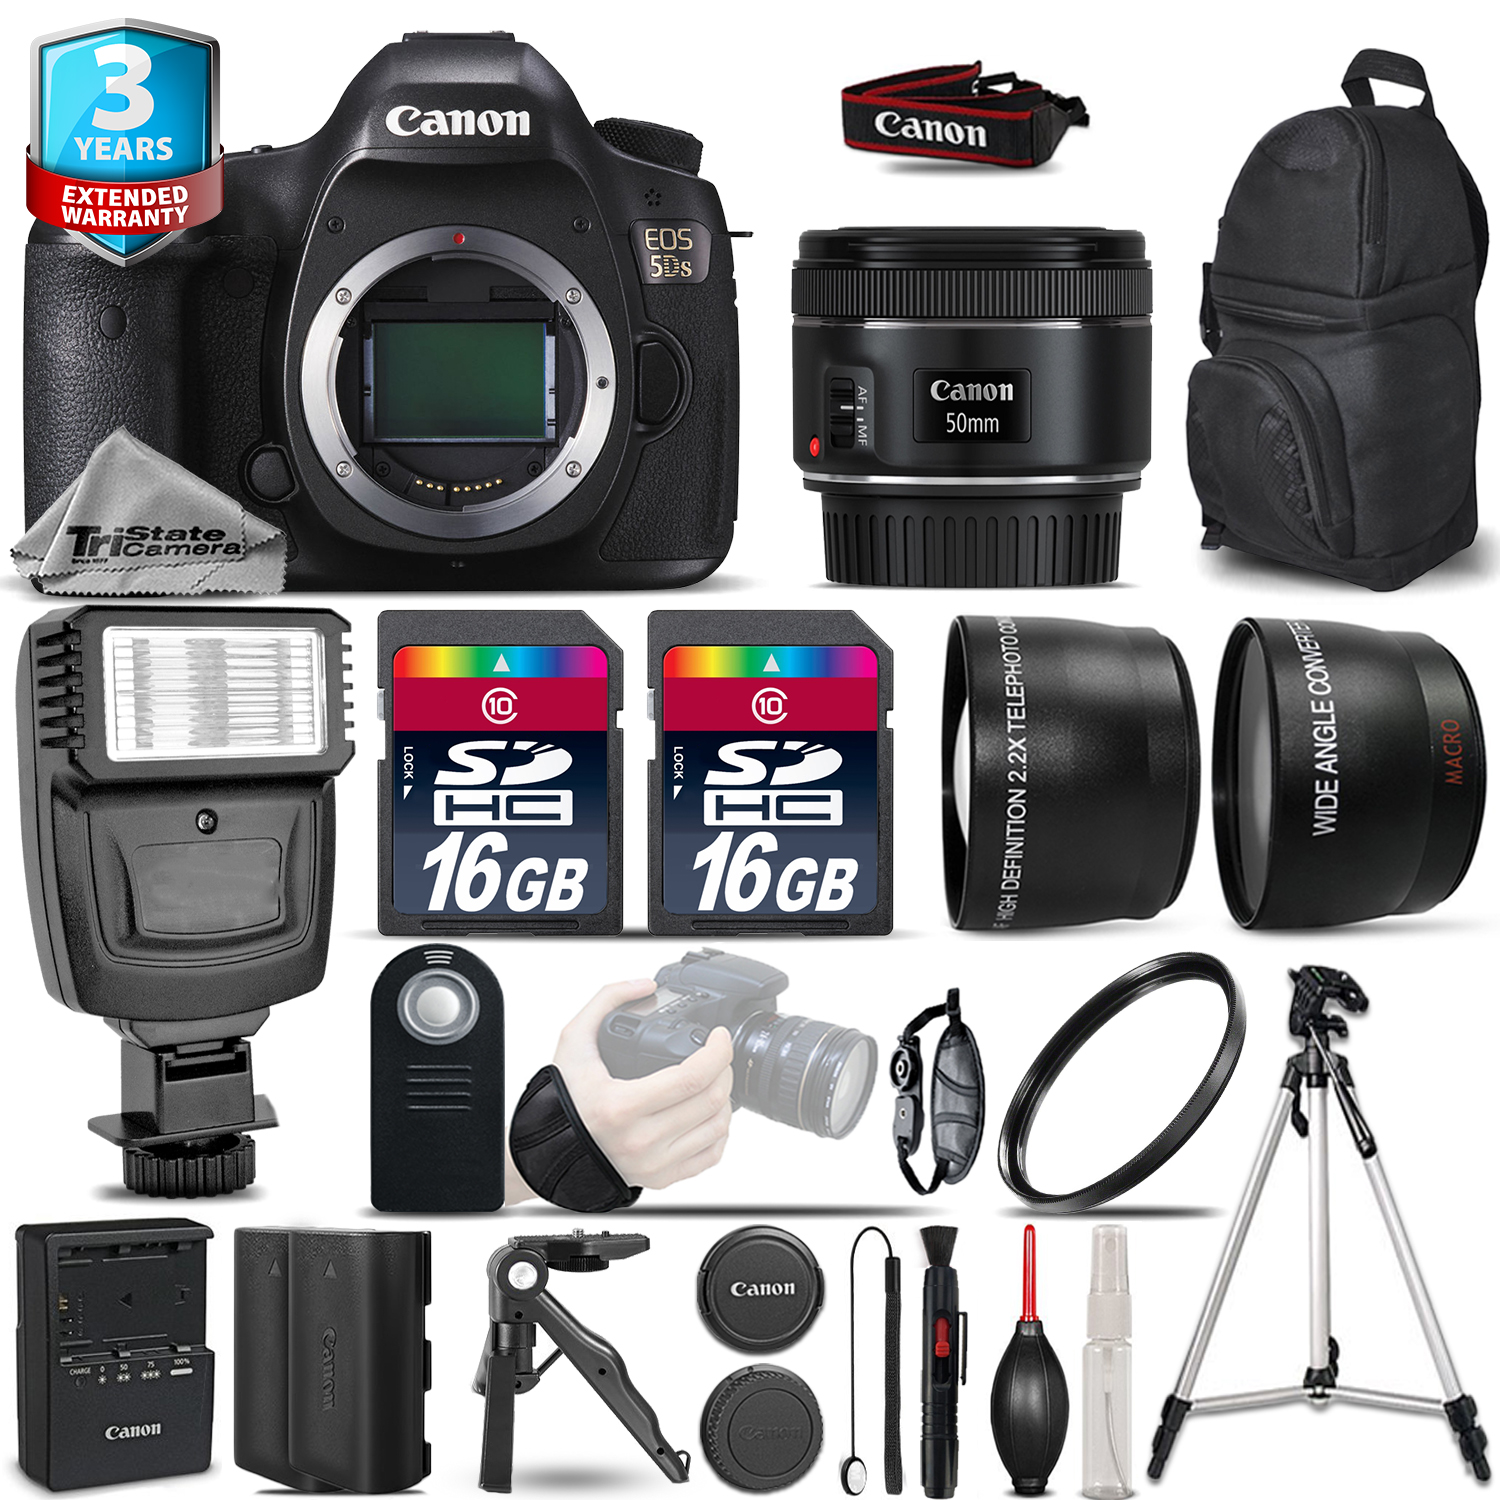 EOS 5DS Camera + 50mm - 3 Lens Kit + Flash + Extra Battery + 2yr Warranty *FREE SHIPPING*